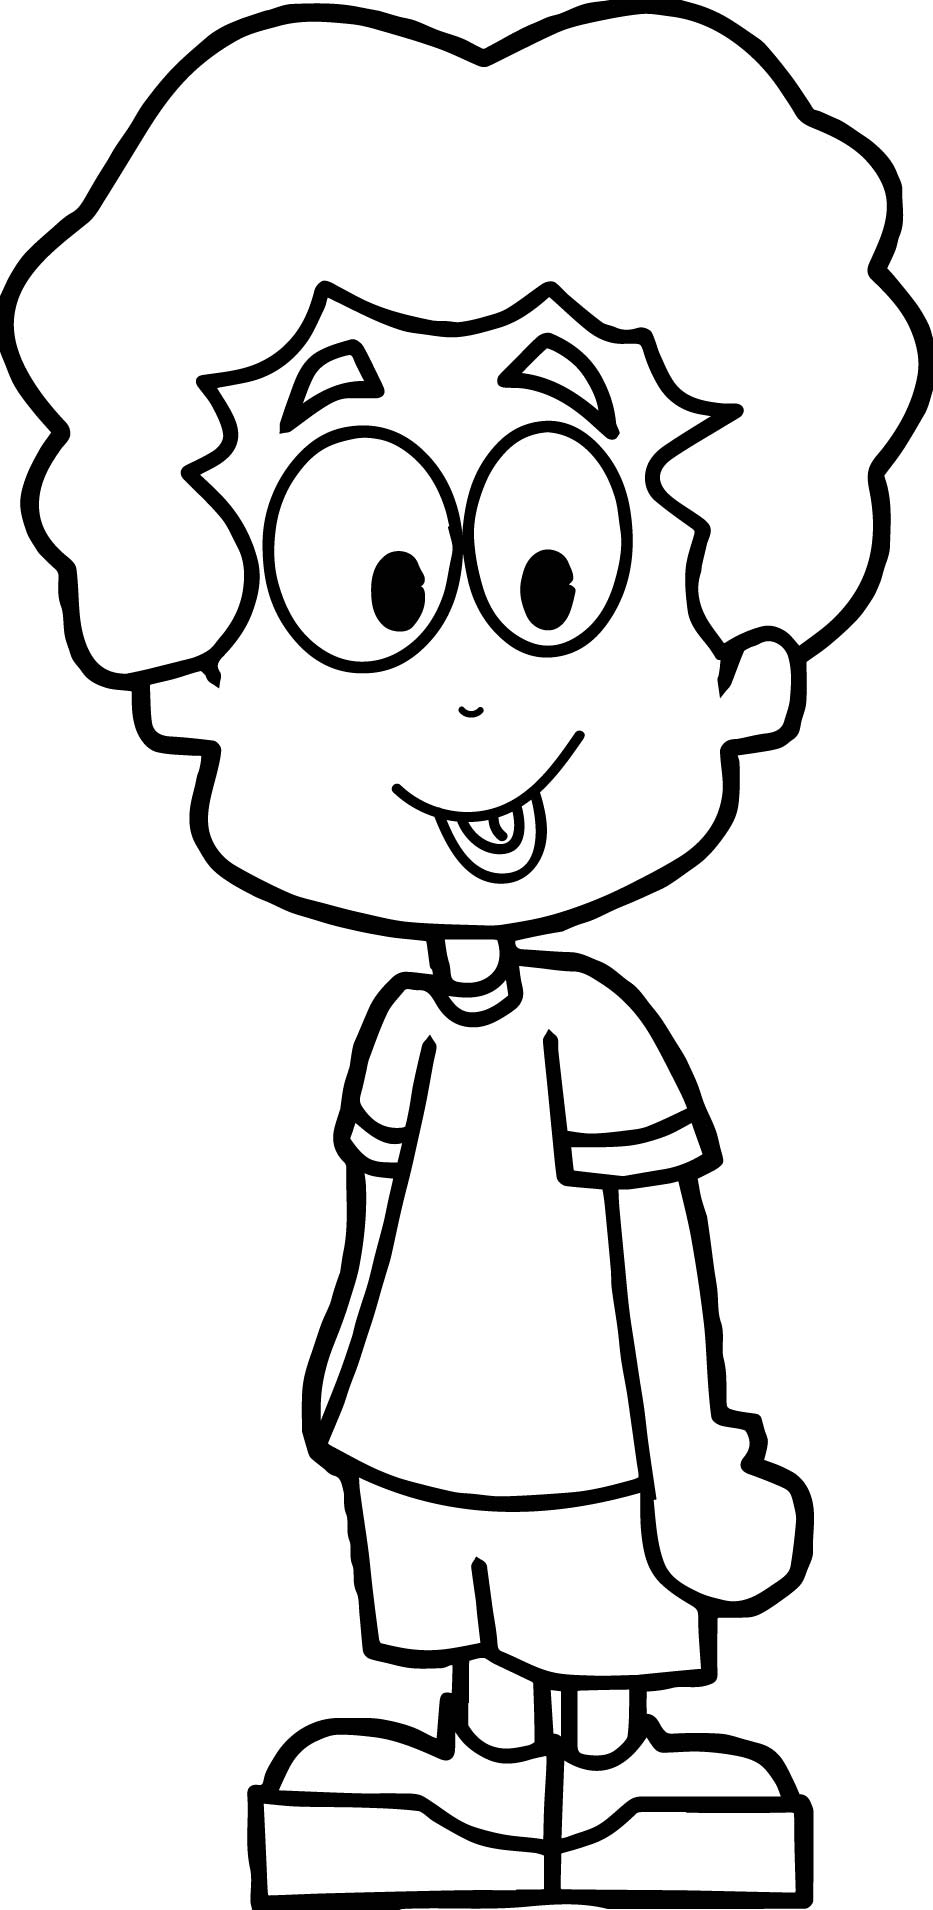 Boys coloring book pages ~ Cartoon Boy Coloring Page | Wecoloringpage.com